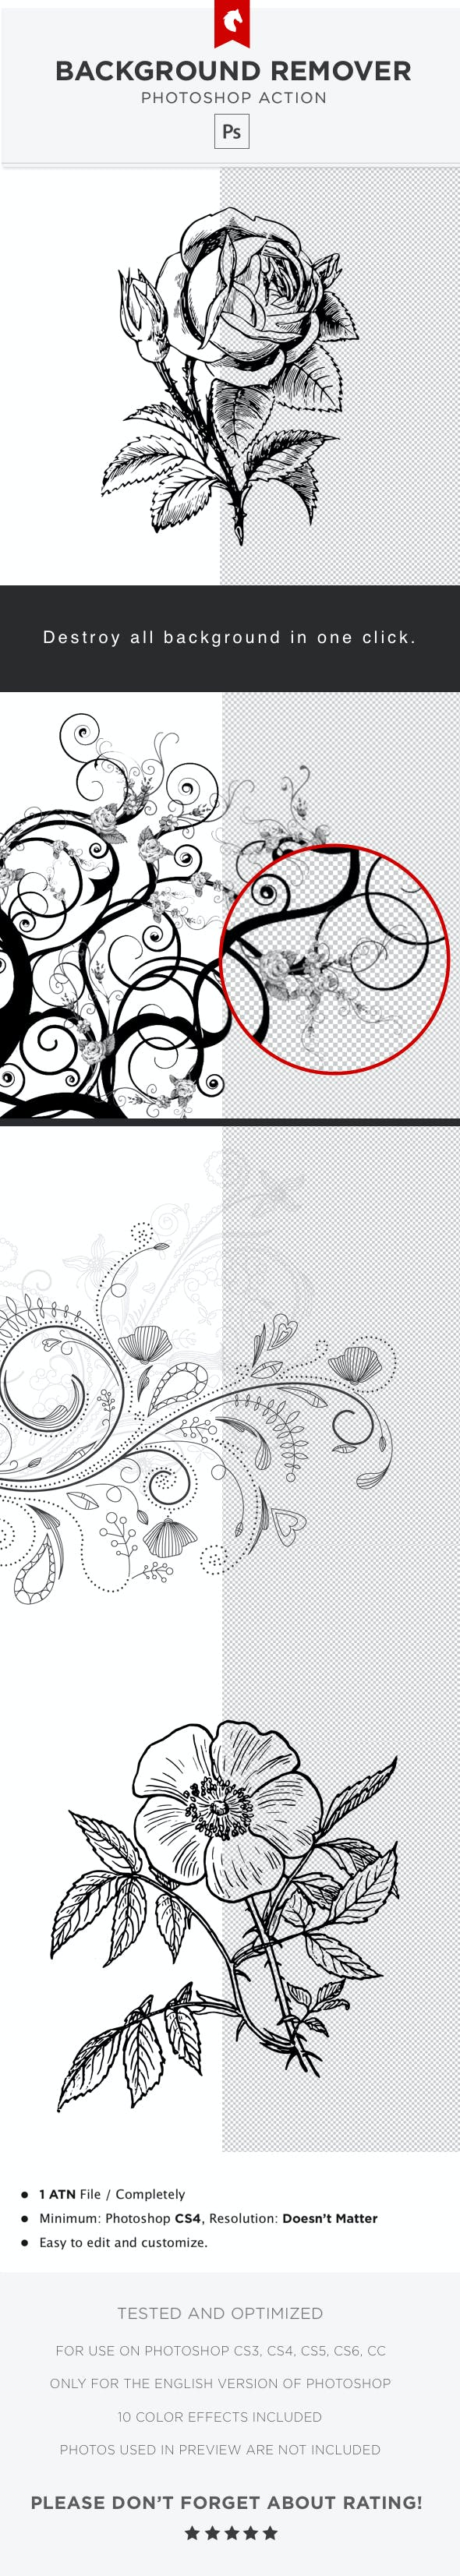 White Background Remover - Photoshop Action